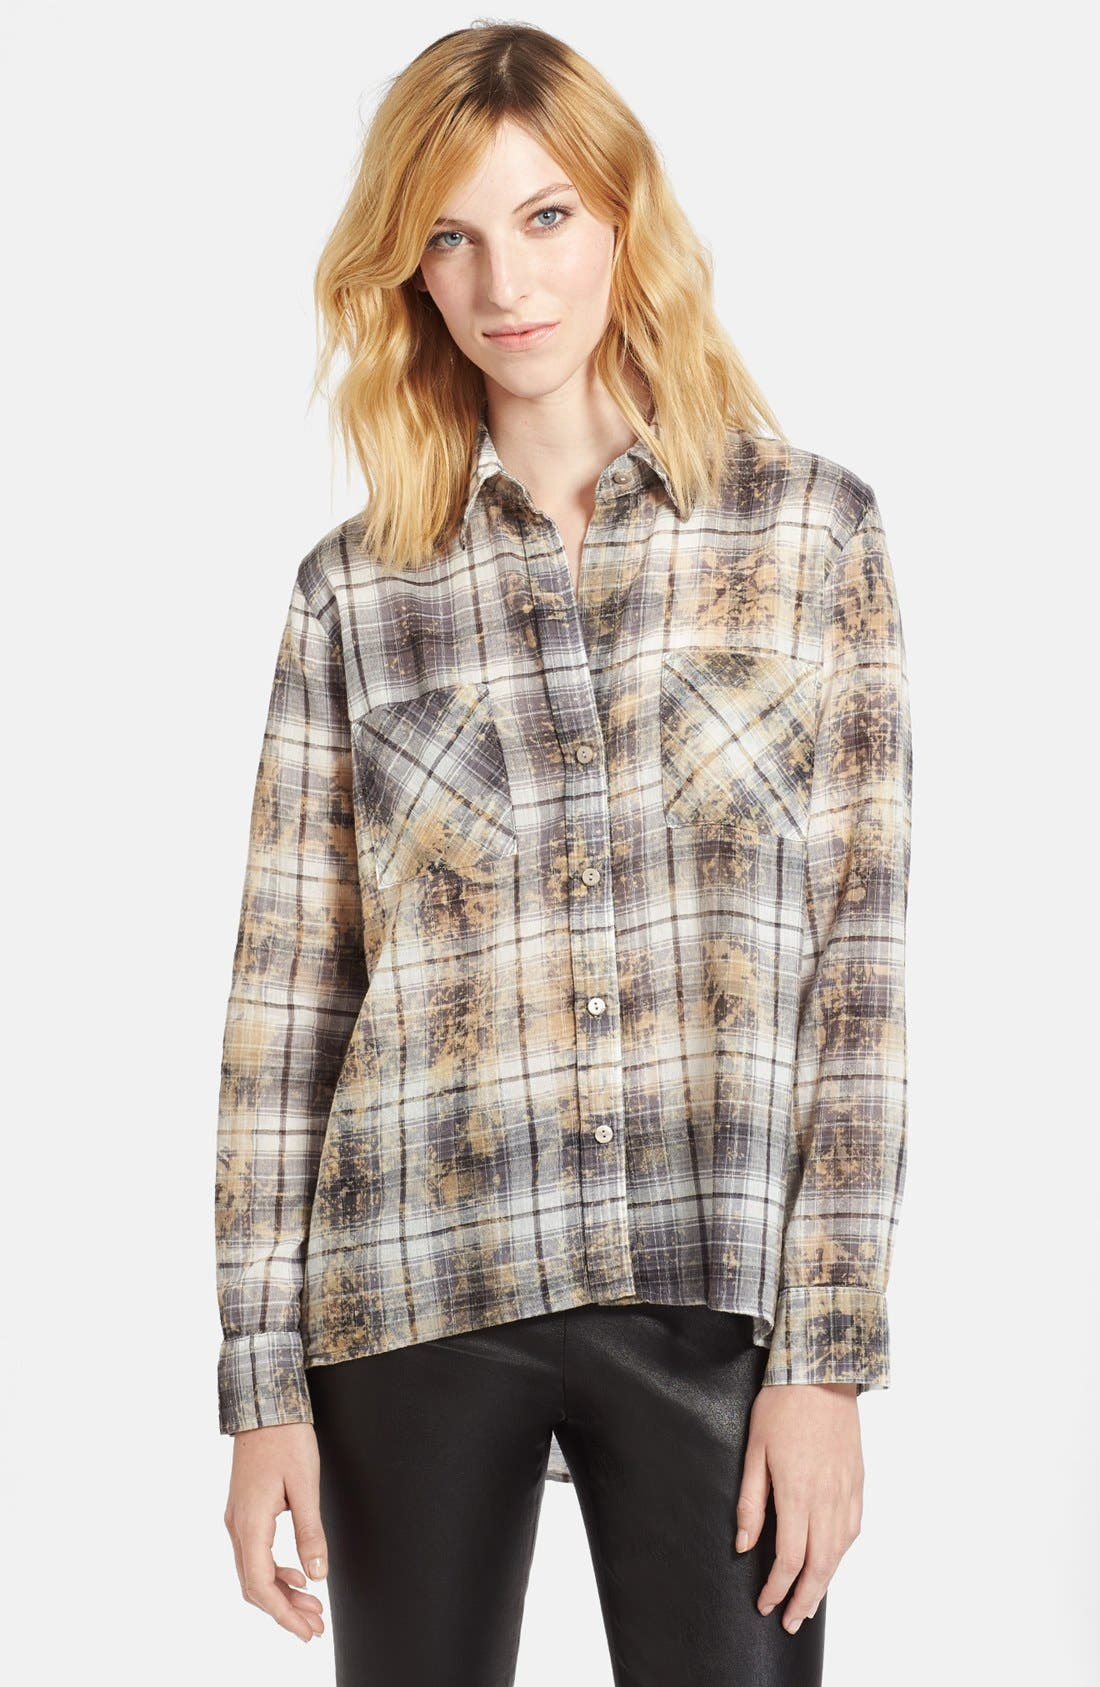 Alternate Image 1 Selected - Enza Costa Plaid High/Low Cotton Shirt